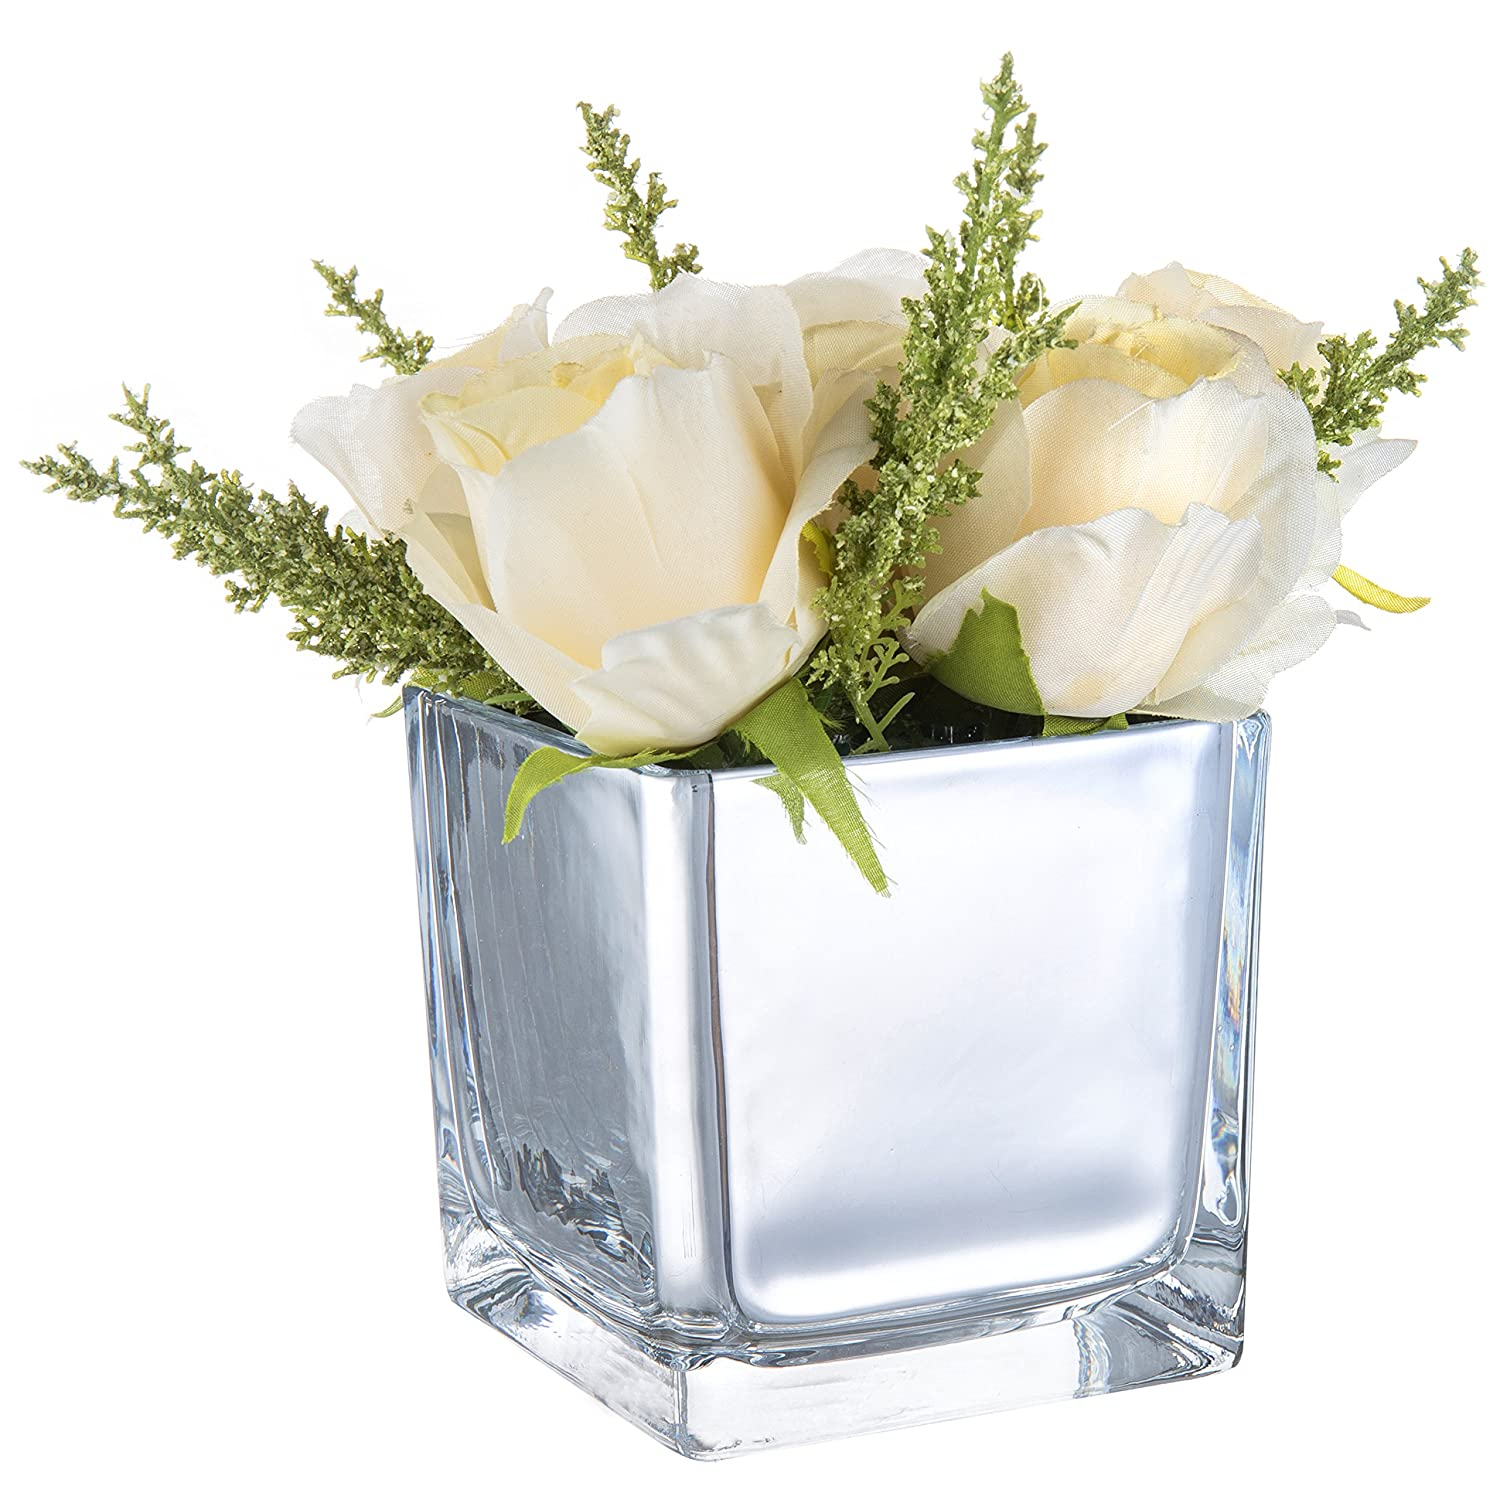 Decorative Square Silver Flower Planter Pot MyGift 4-Inch Mirror-Finish Glass Cube Vase